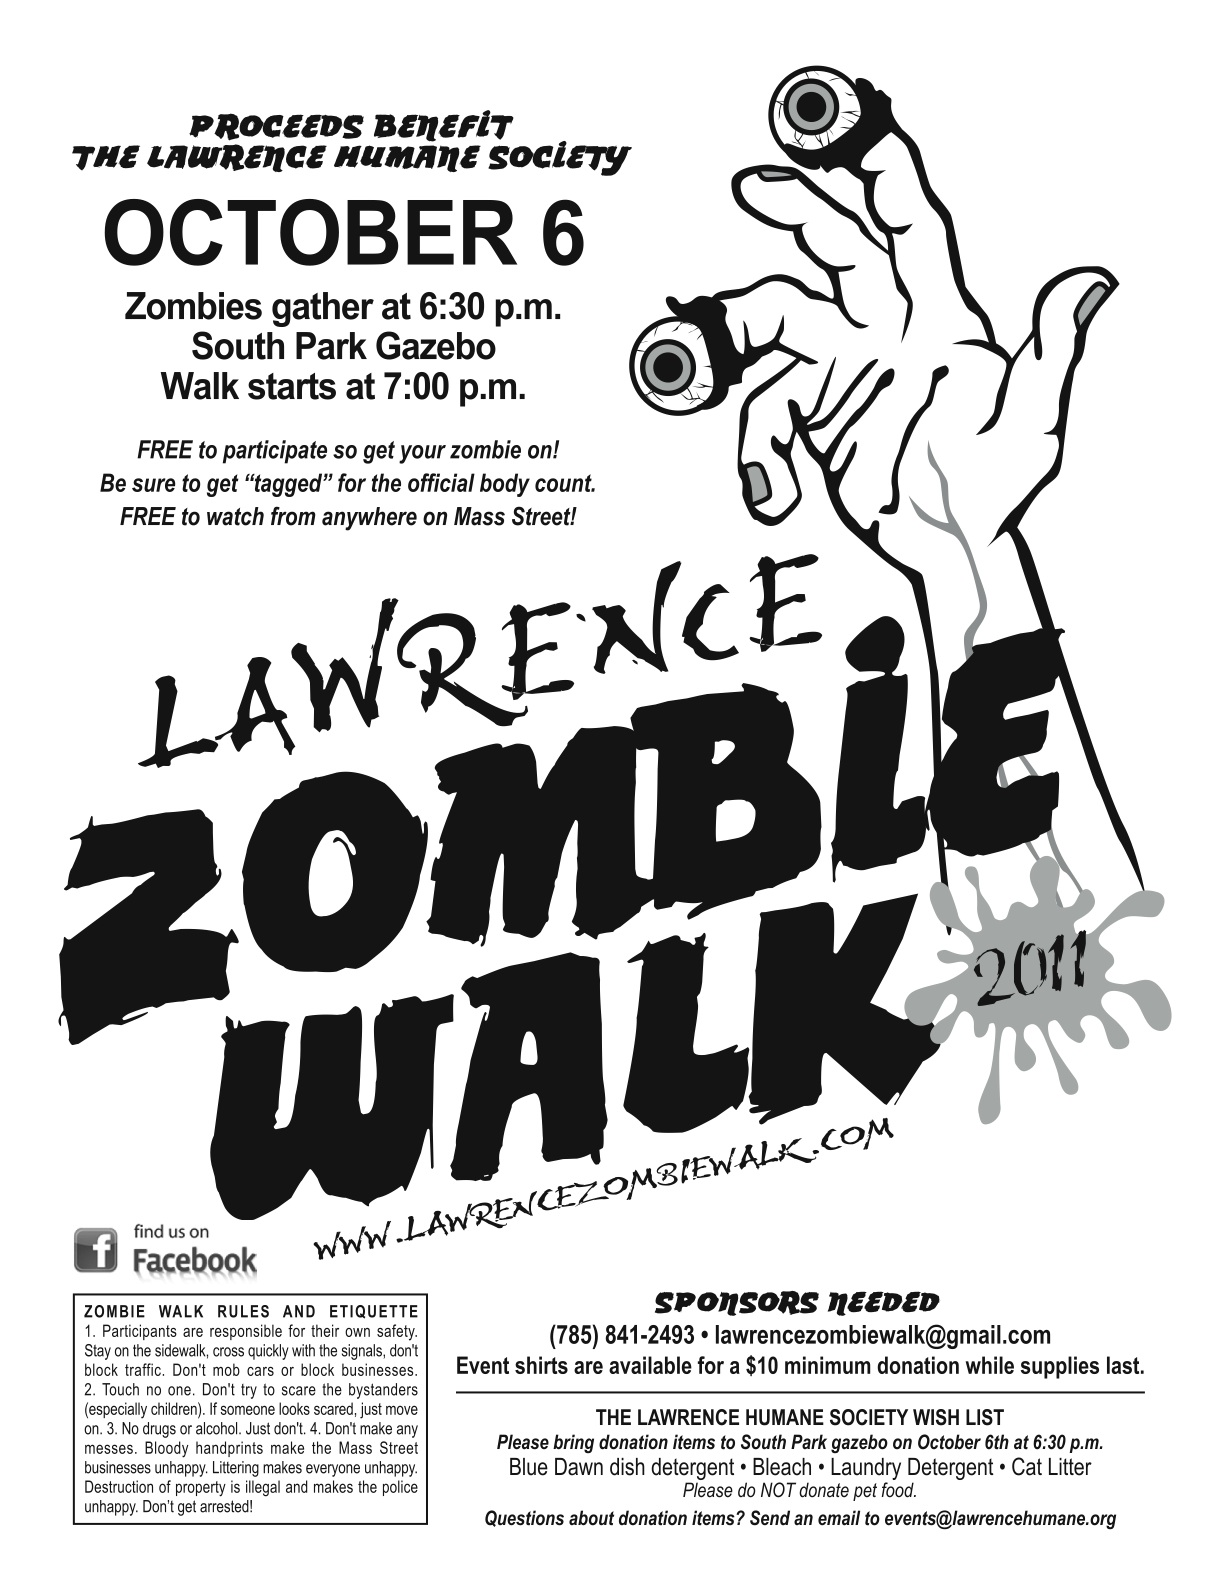 Lawrence Zombie Walk: Print a flyer for the walk!